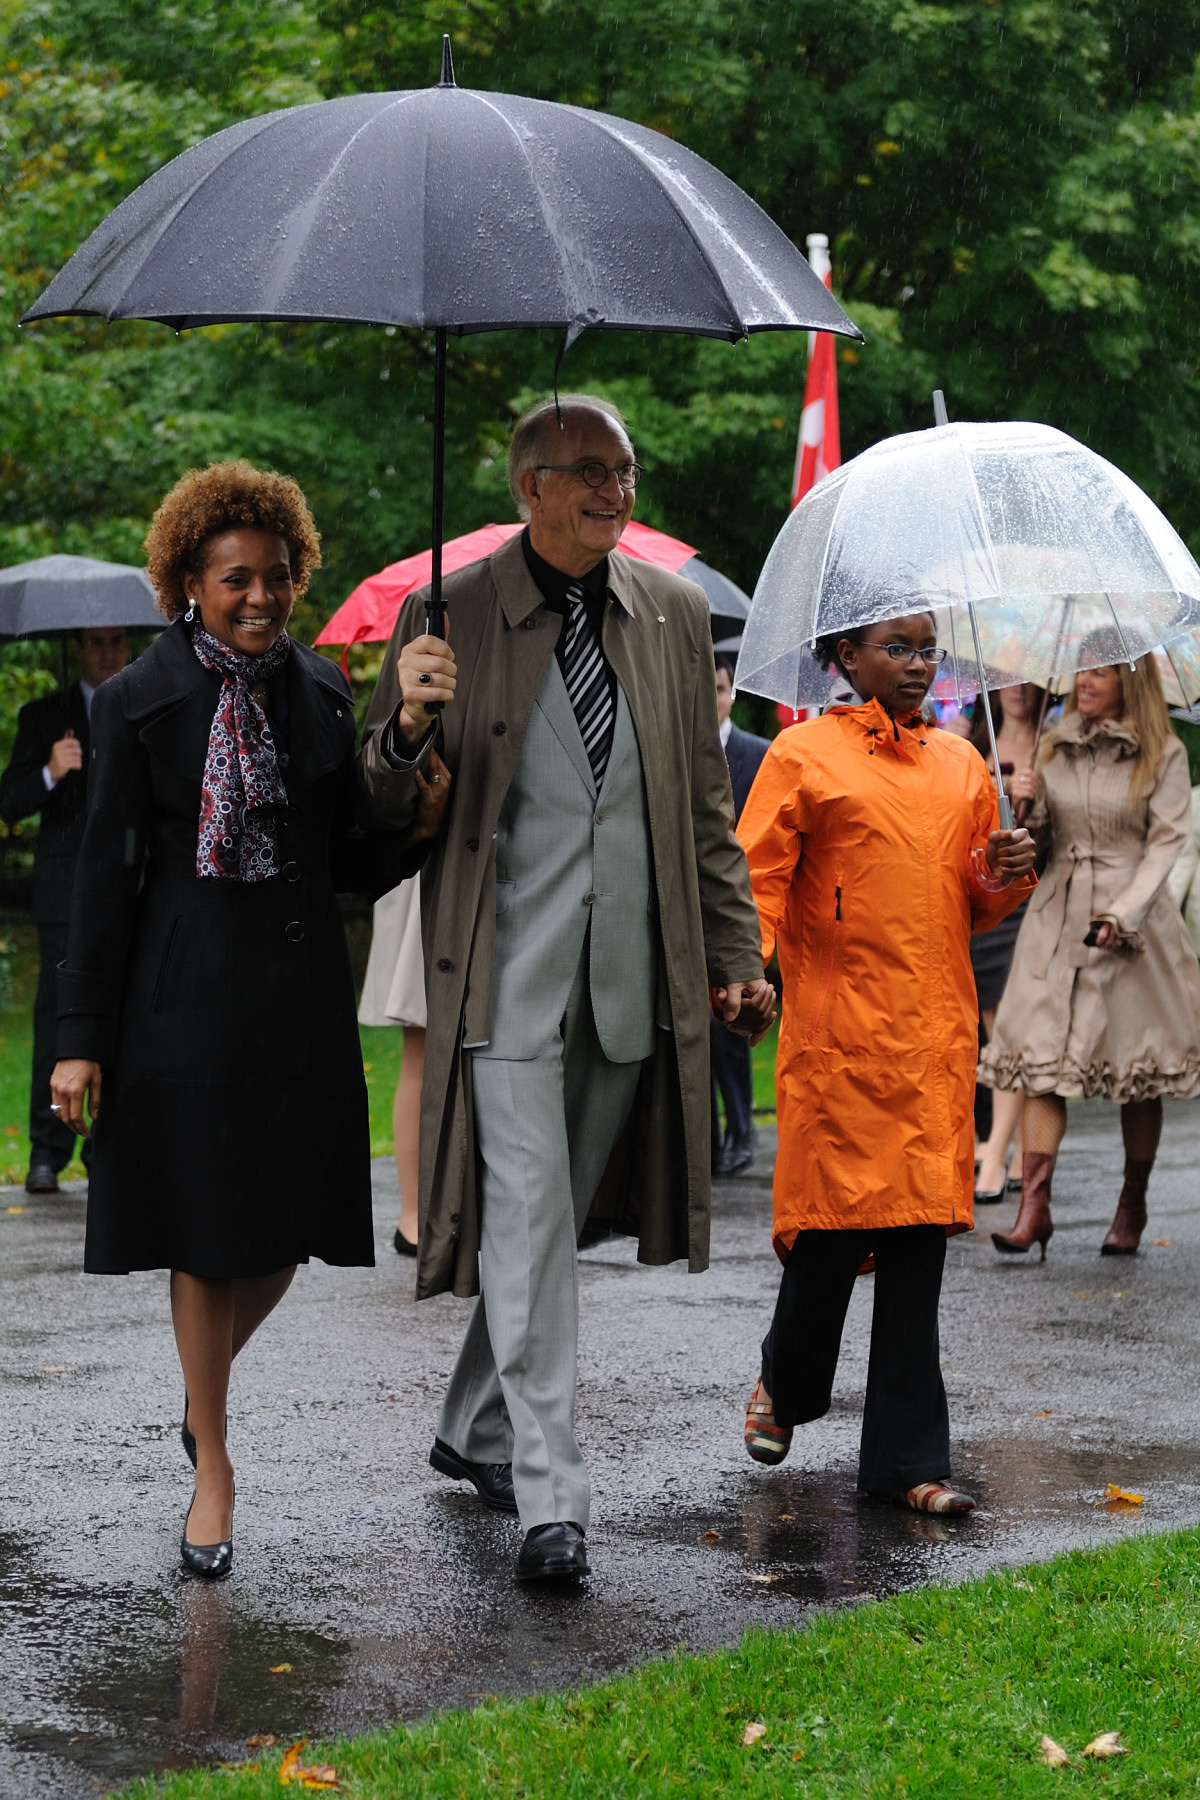 Their Excellencies the Right Honourable Michaëlle Jean, Governor General of Canada, and Mr. Jean-Daniel Lafond, accompanied by their daughter, Marie-Éden, participated in a tree planting ceremony to commemorate the end of their mandate. The event was held at Rideau Hall on September 30, 2010.